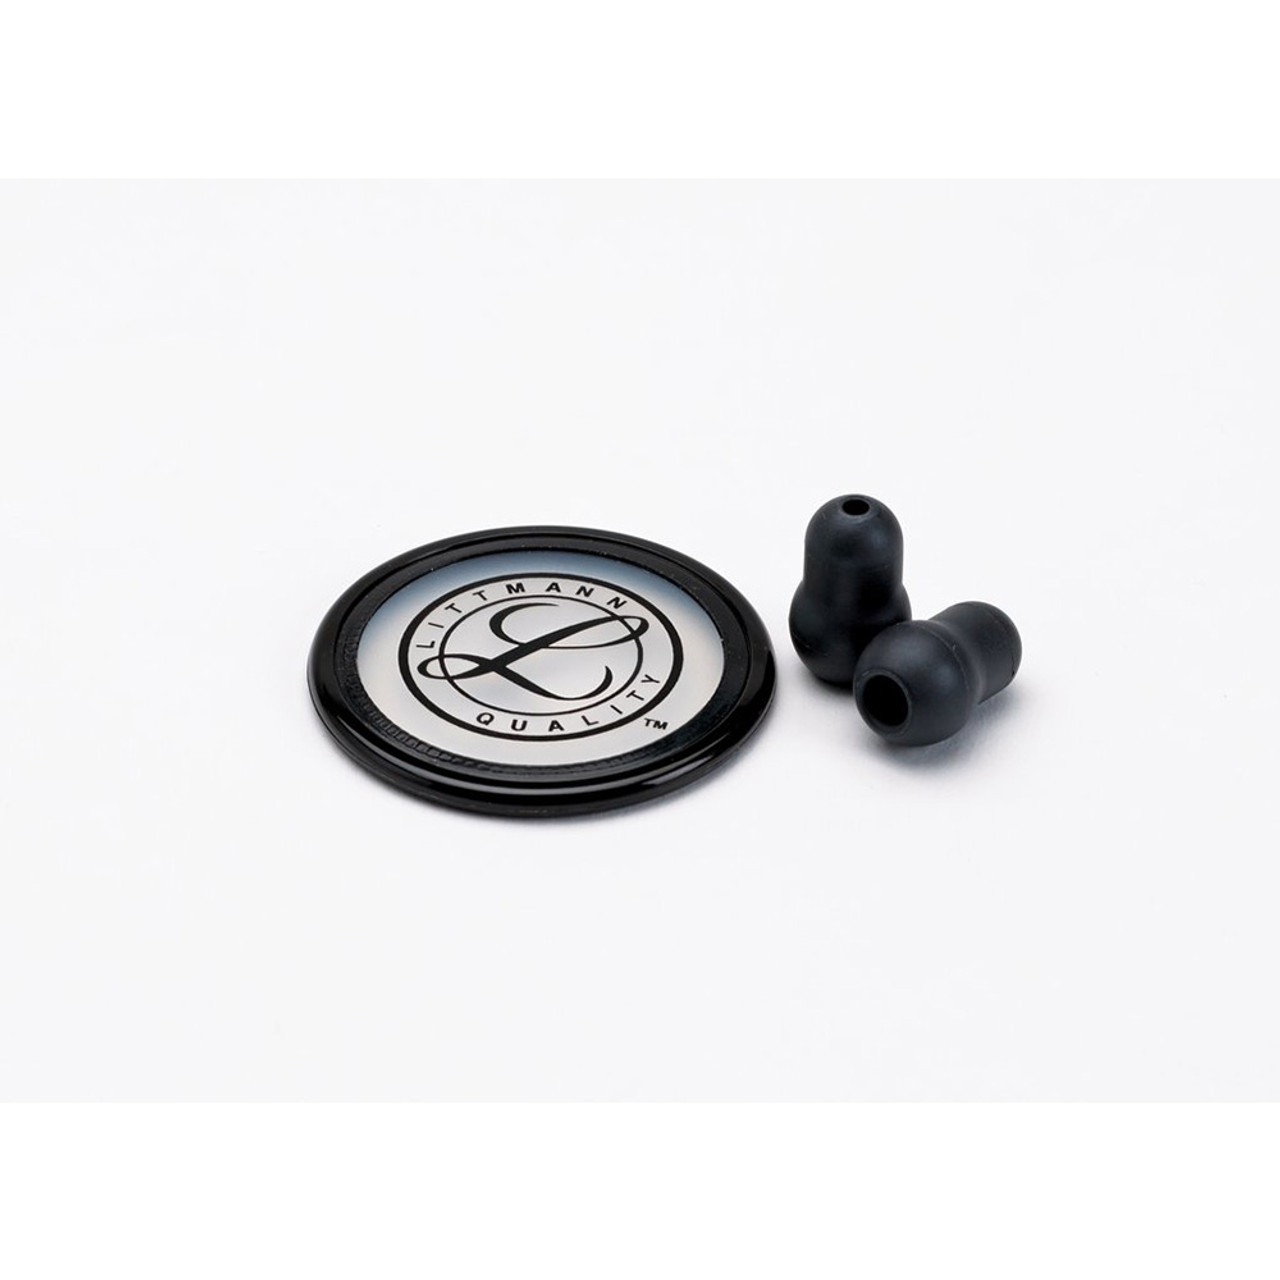 Littmann Stethoscope Spare Parts Kit, Master Classic, Black, 40022